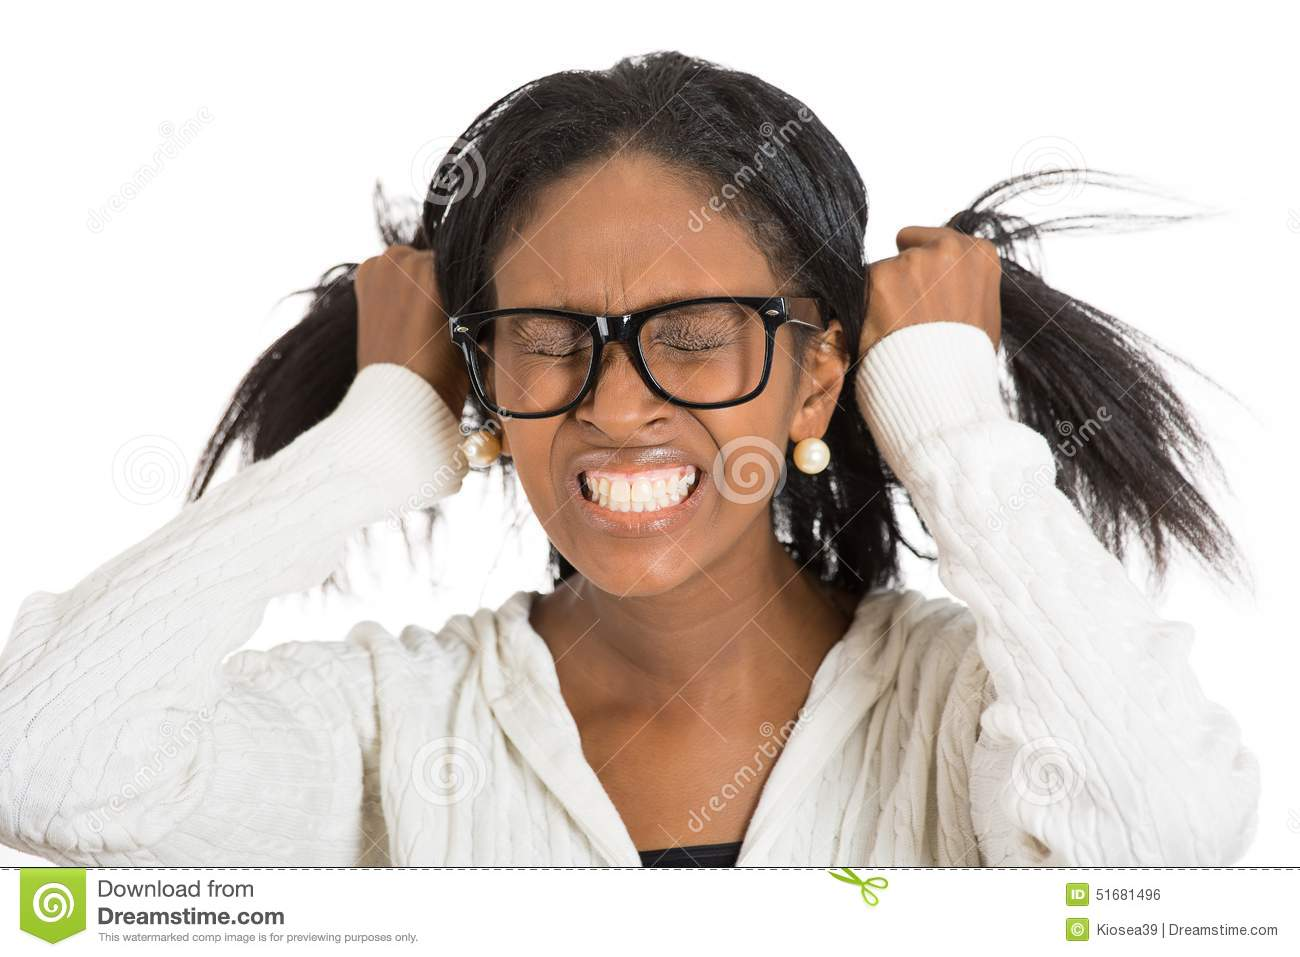 Frustrated Stressed Woman With Glasses Pulling Her Hair